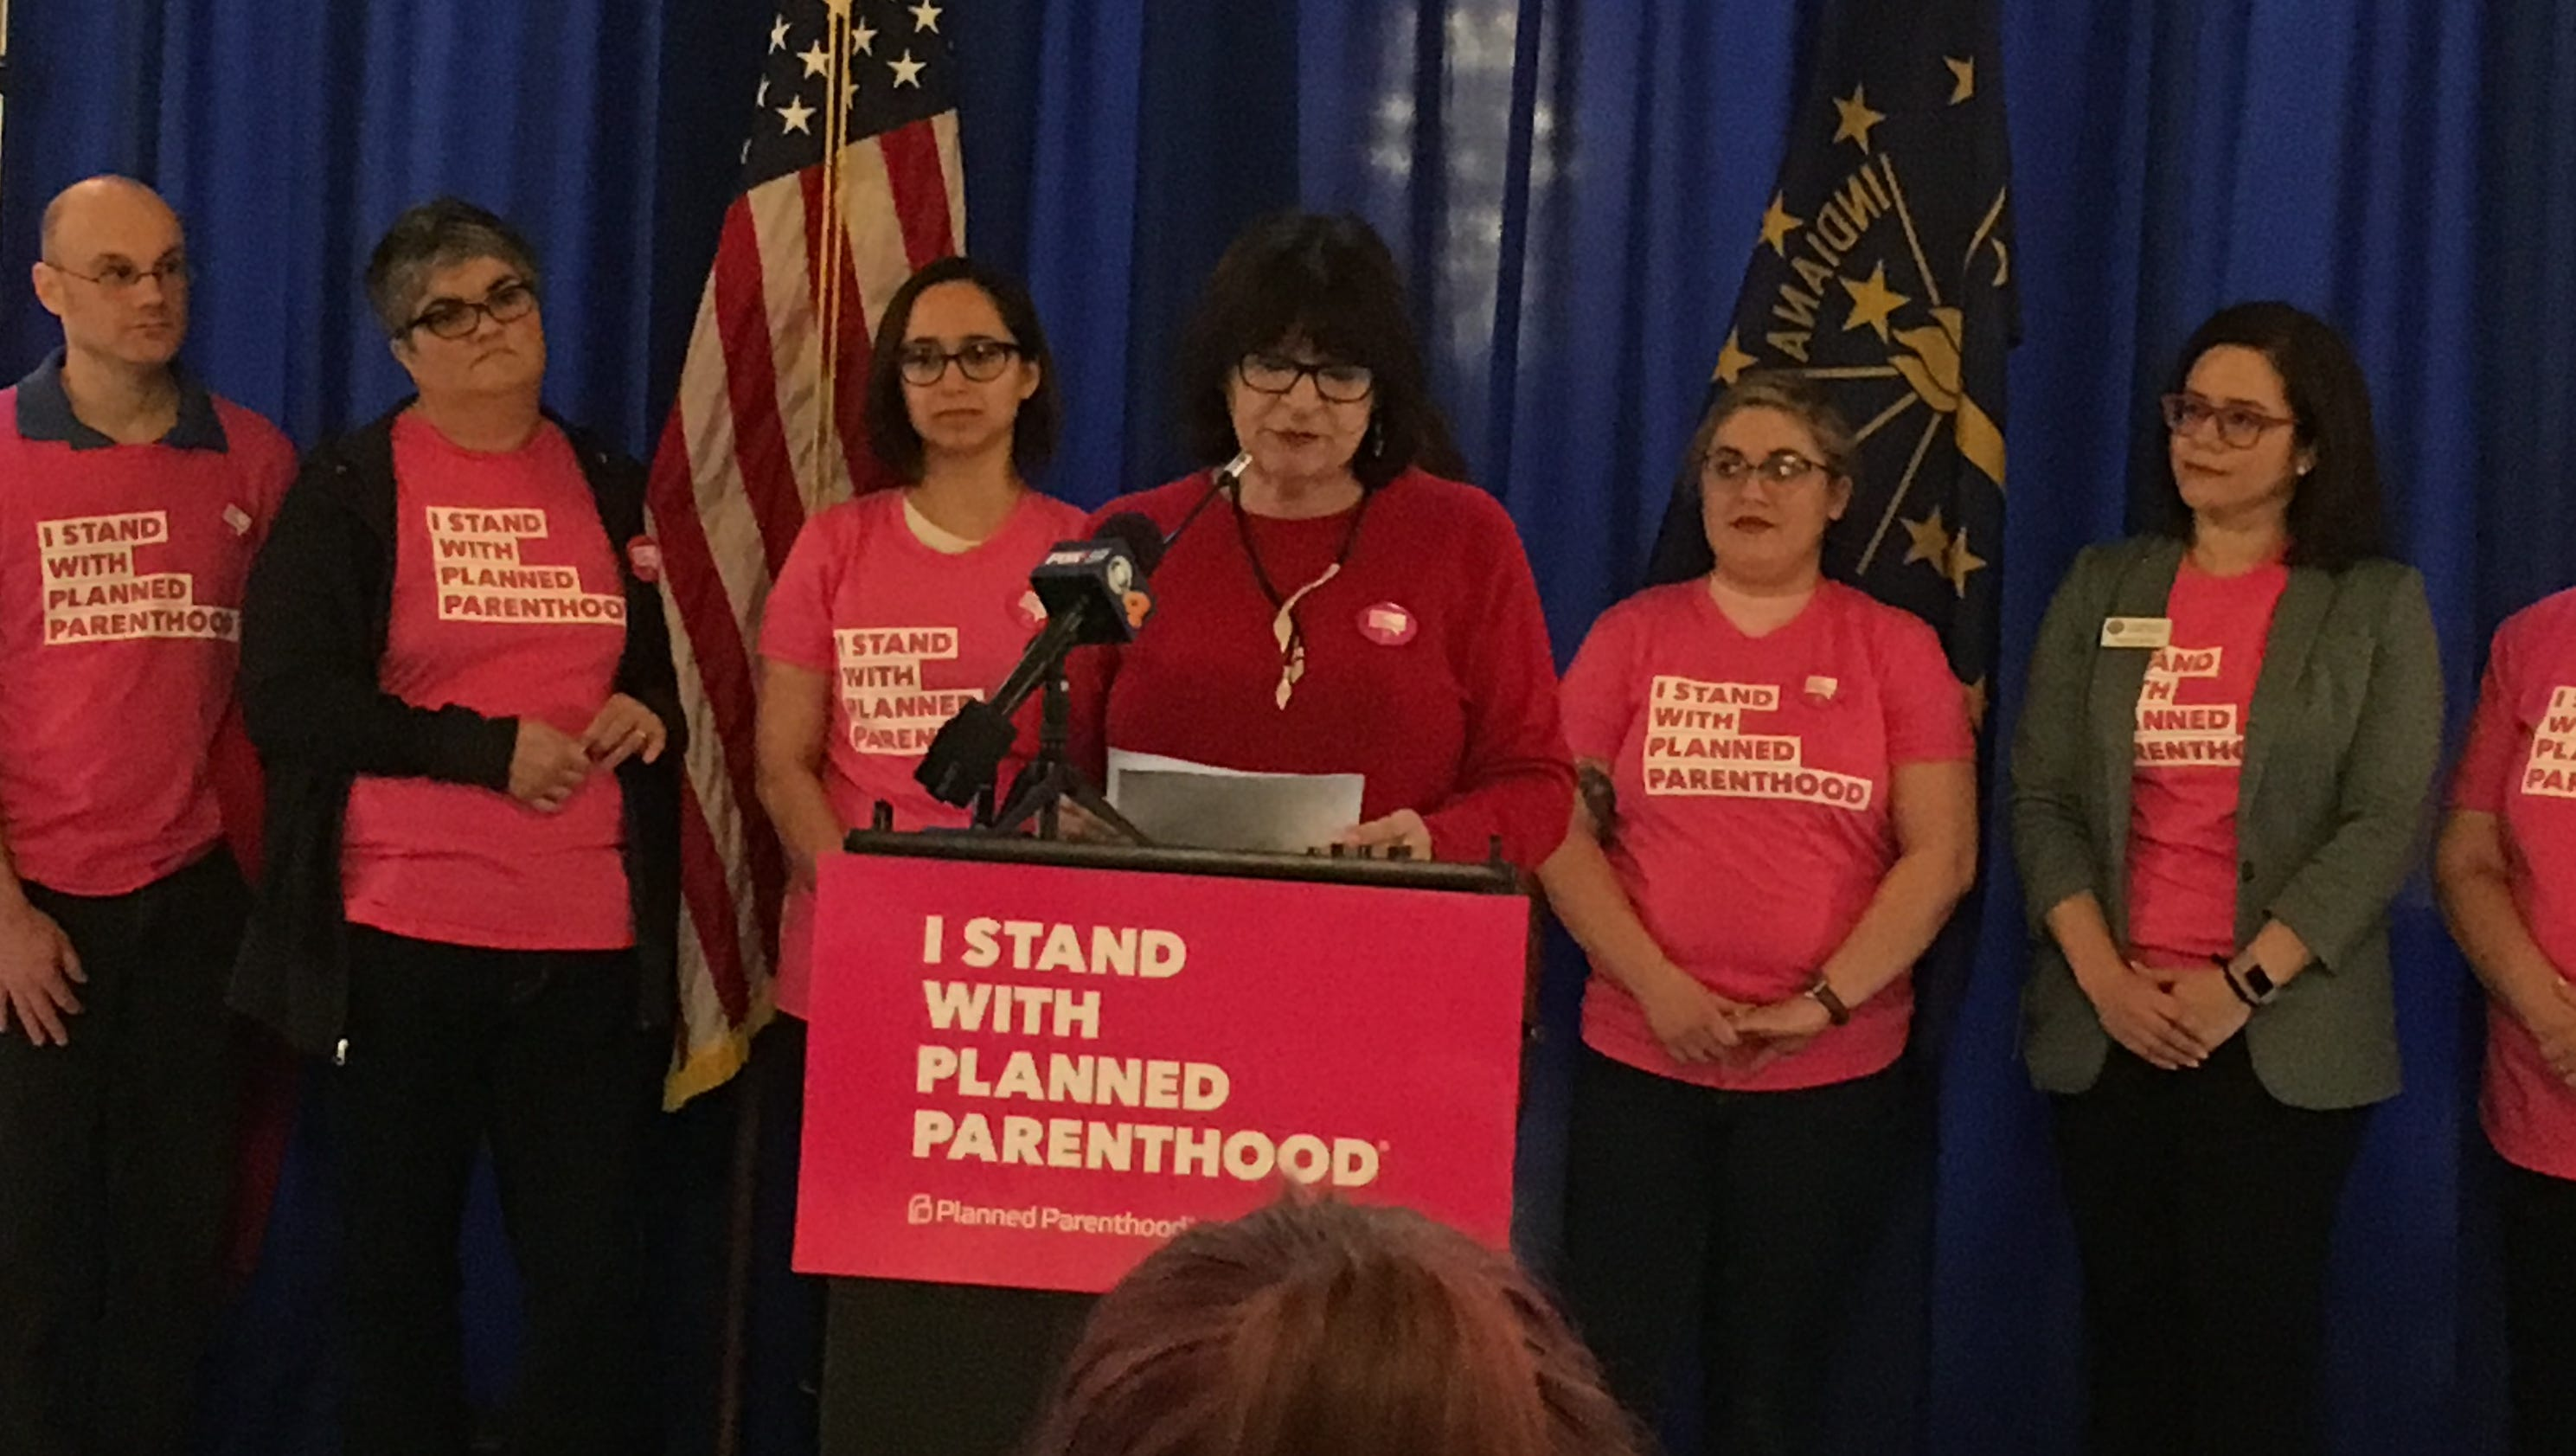 High-Profile PPFA Supporters Voice Concerns About Court